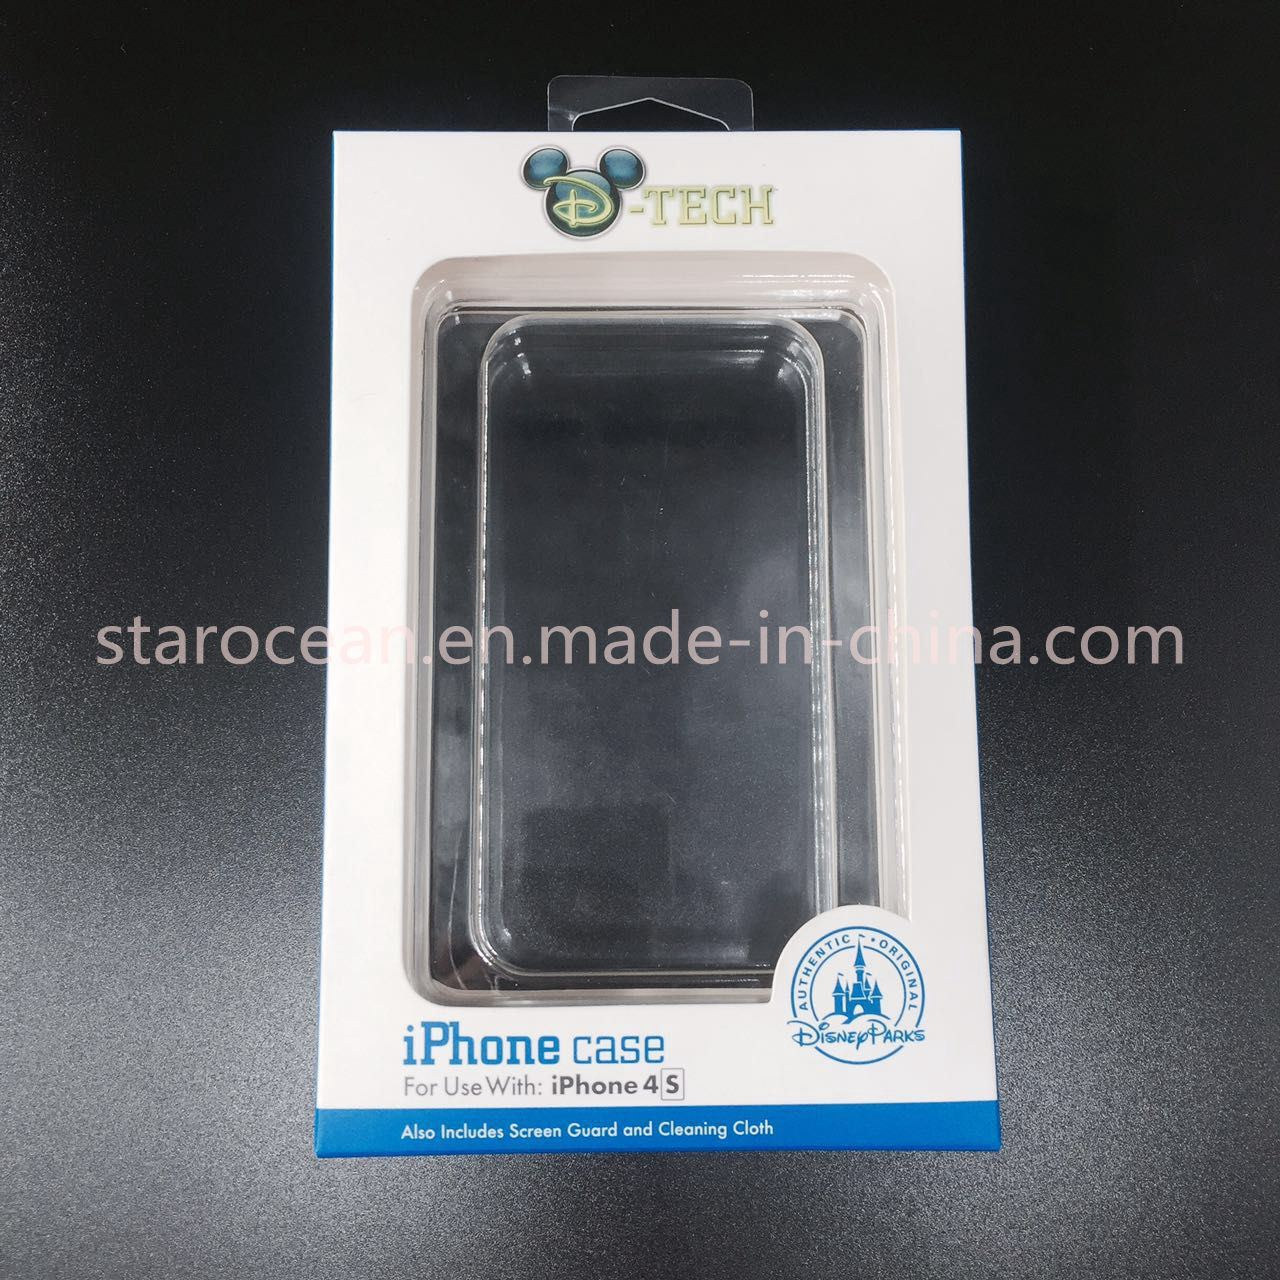 Blister Clamshell with Plastic Packaging Box